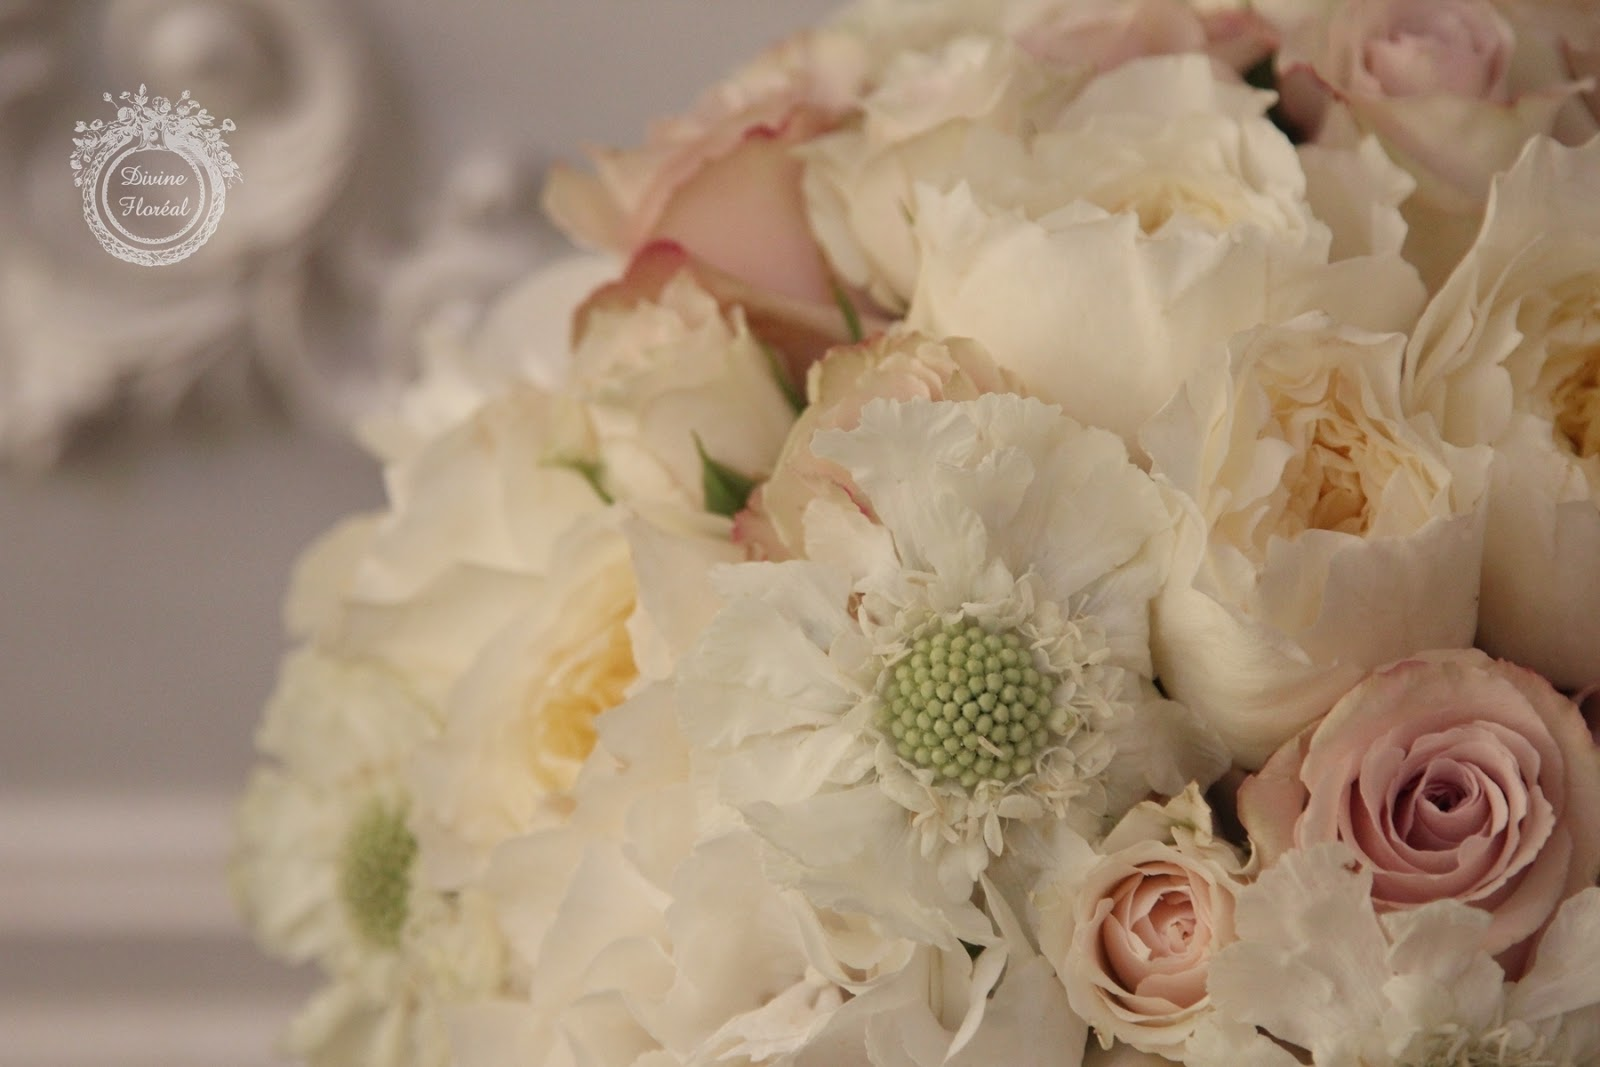 the bouquet consisted of white hydrangea and scabiosa ivory spray rose fragrant david austin patience garden rose and a most gorgeous blush rose - White Patience Garden Rose